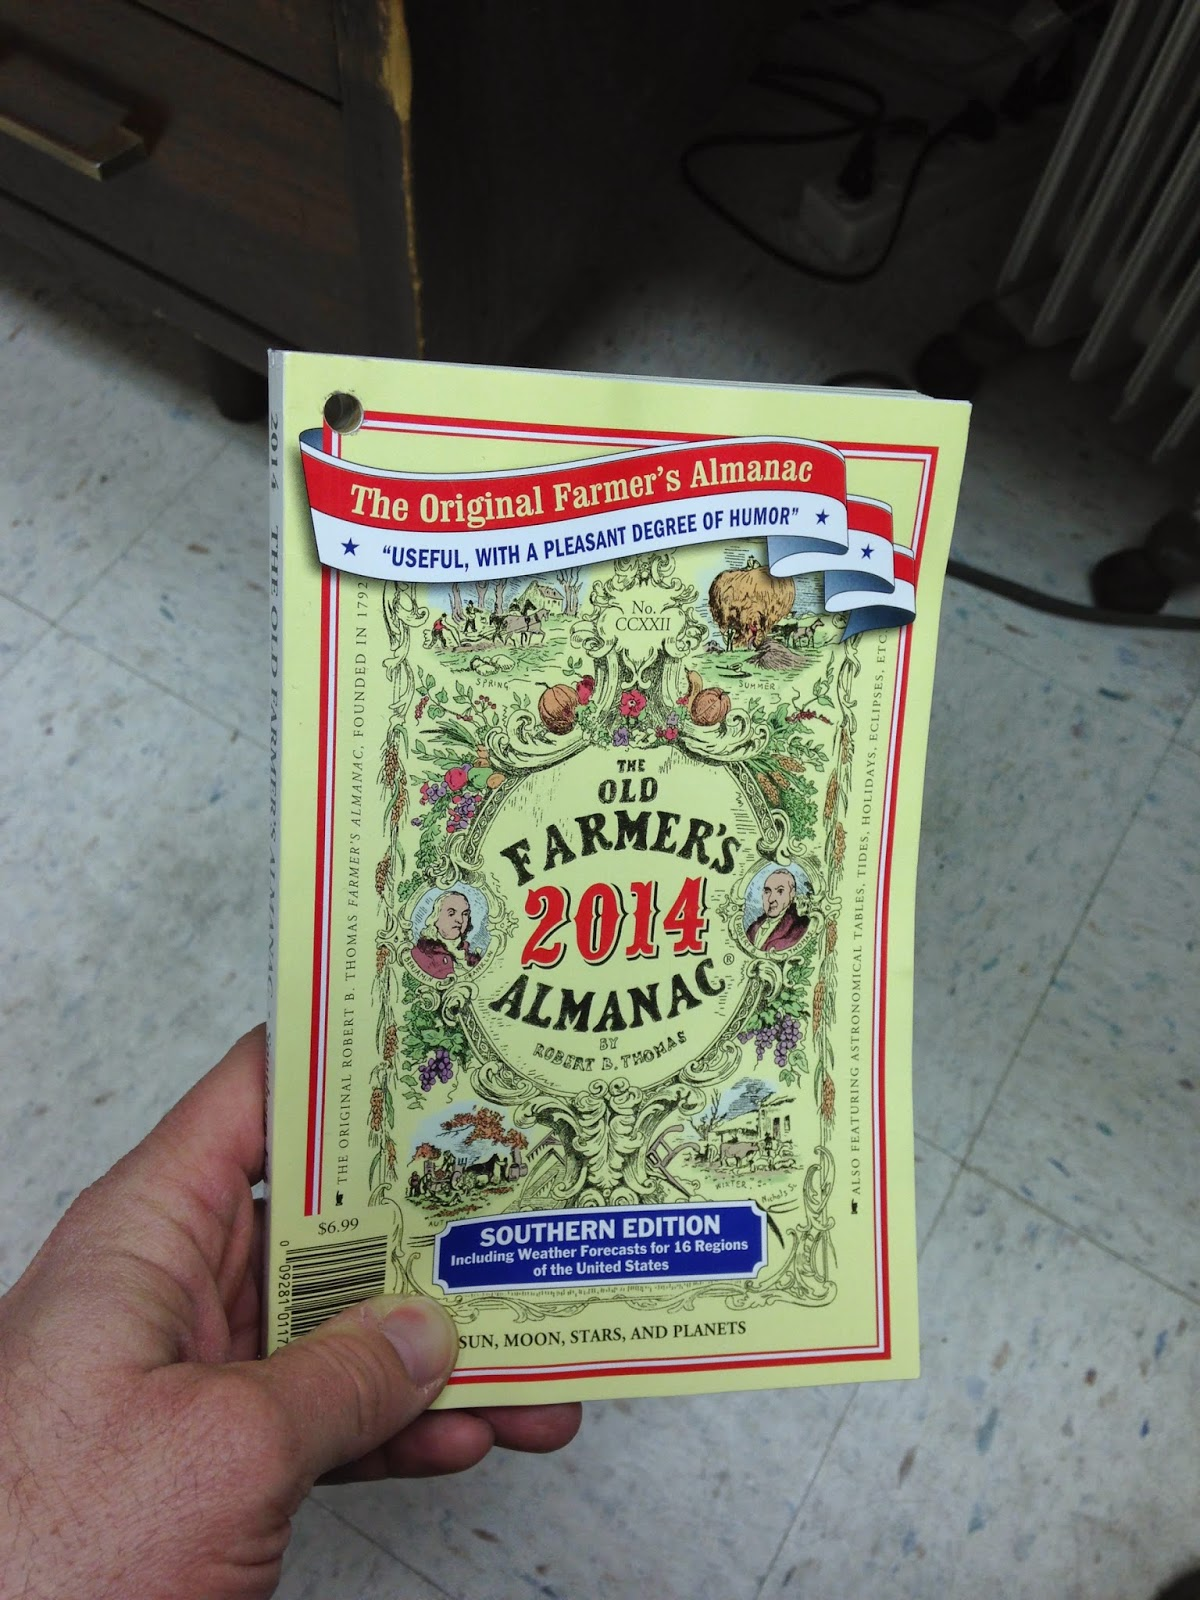 What Does The Old Farmer's Almanac Say?